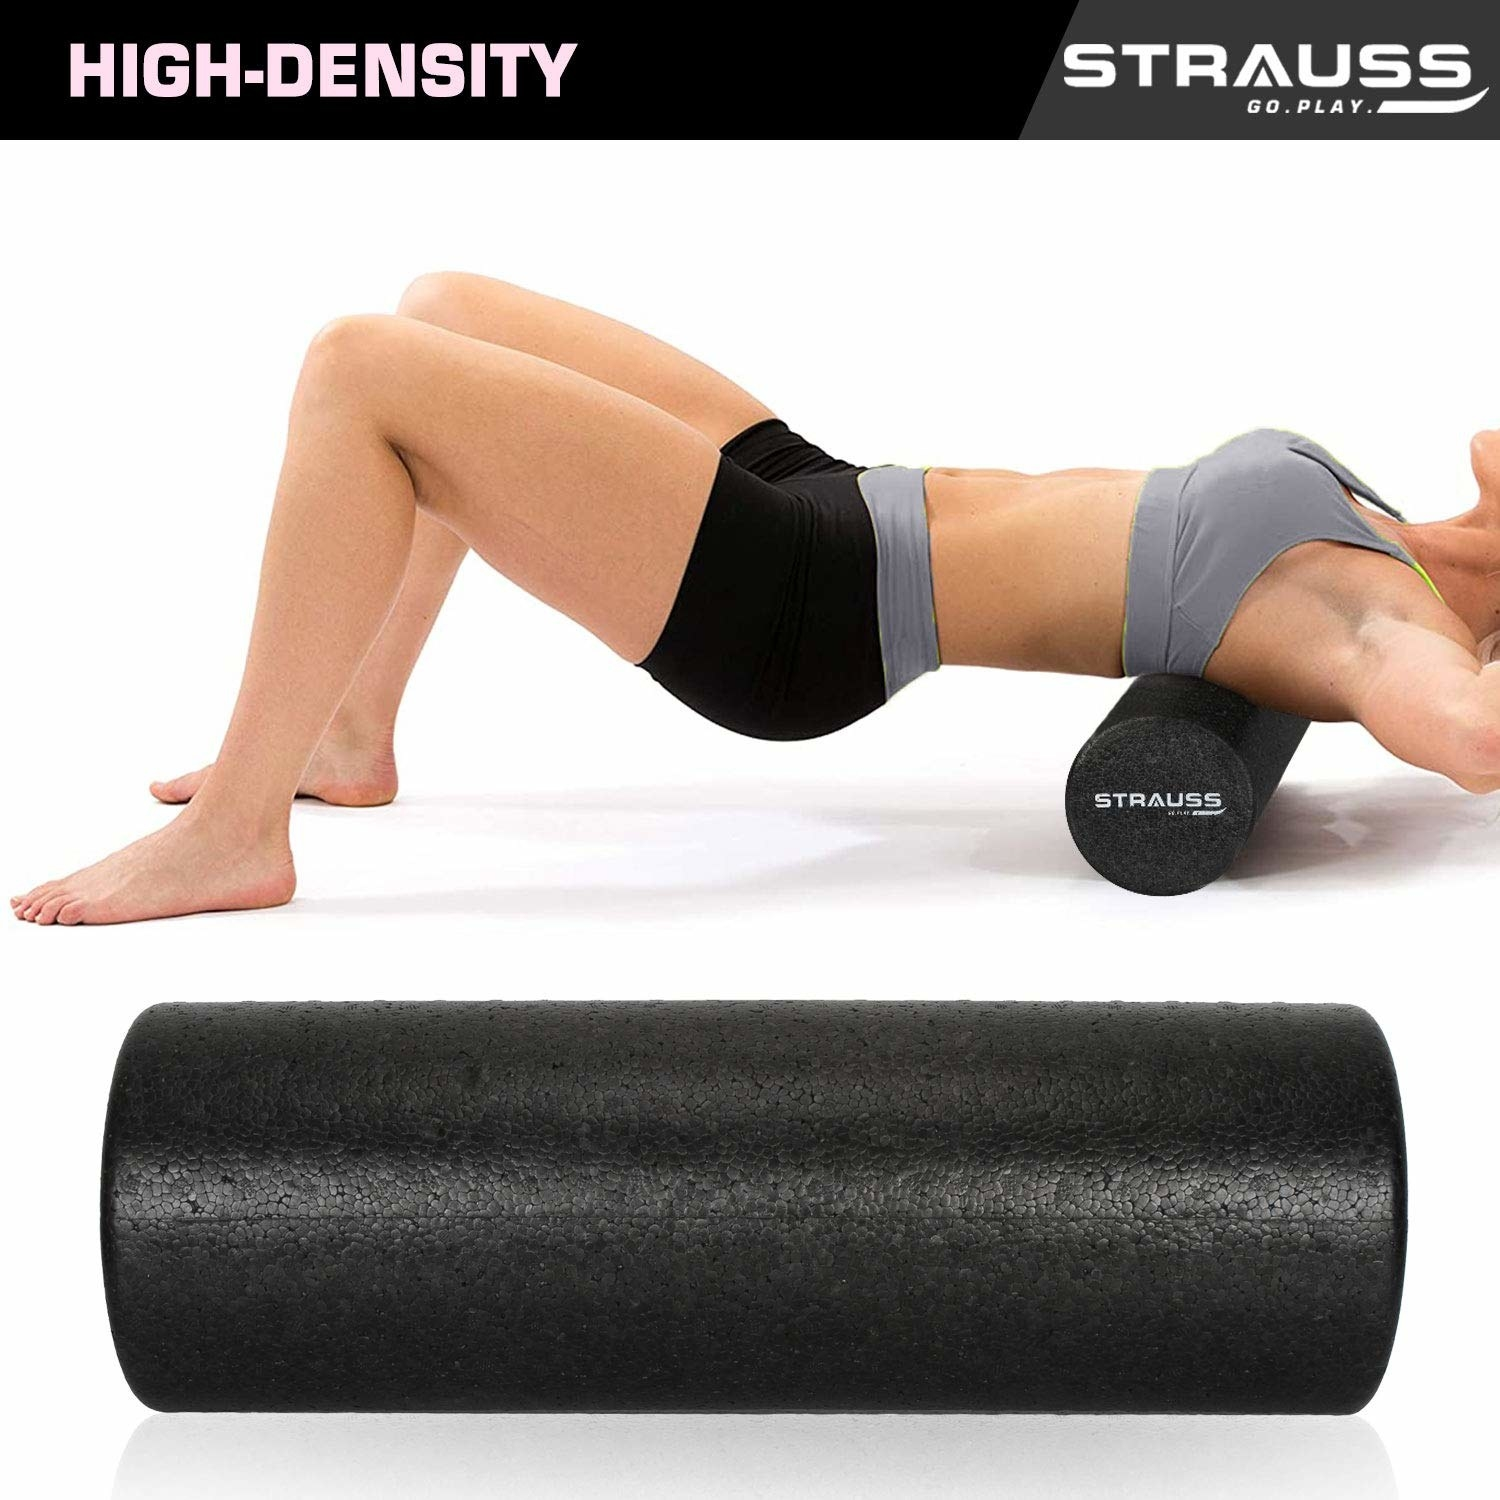 A woman using the cylindrical smooth black foam roller to exercise and relieve stress.